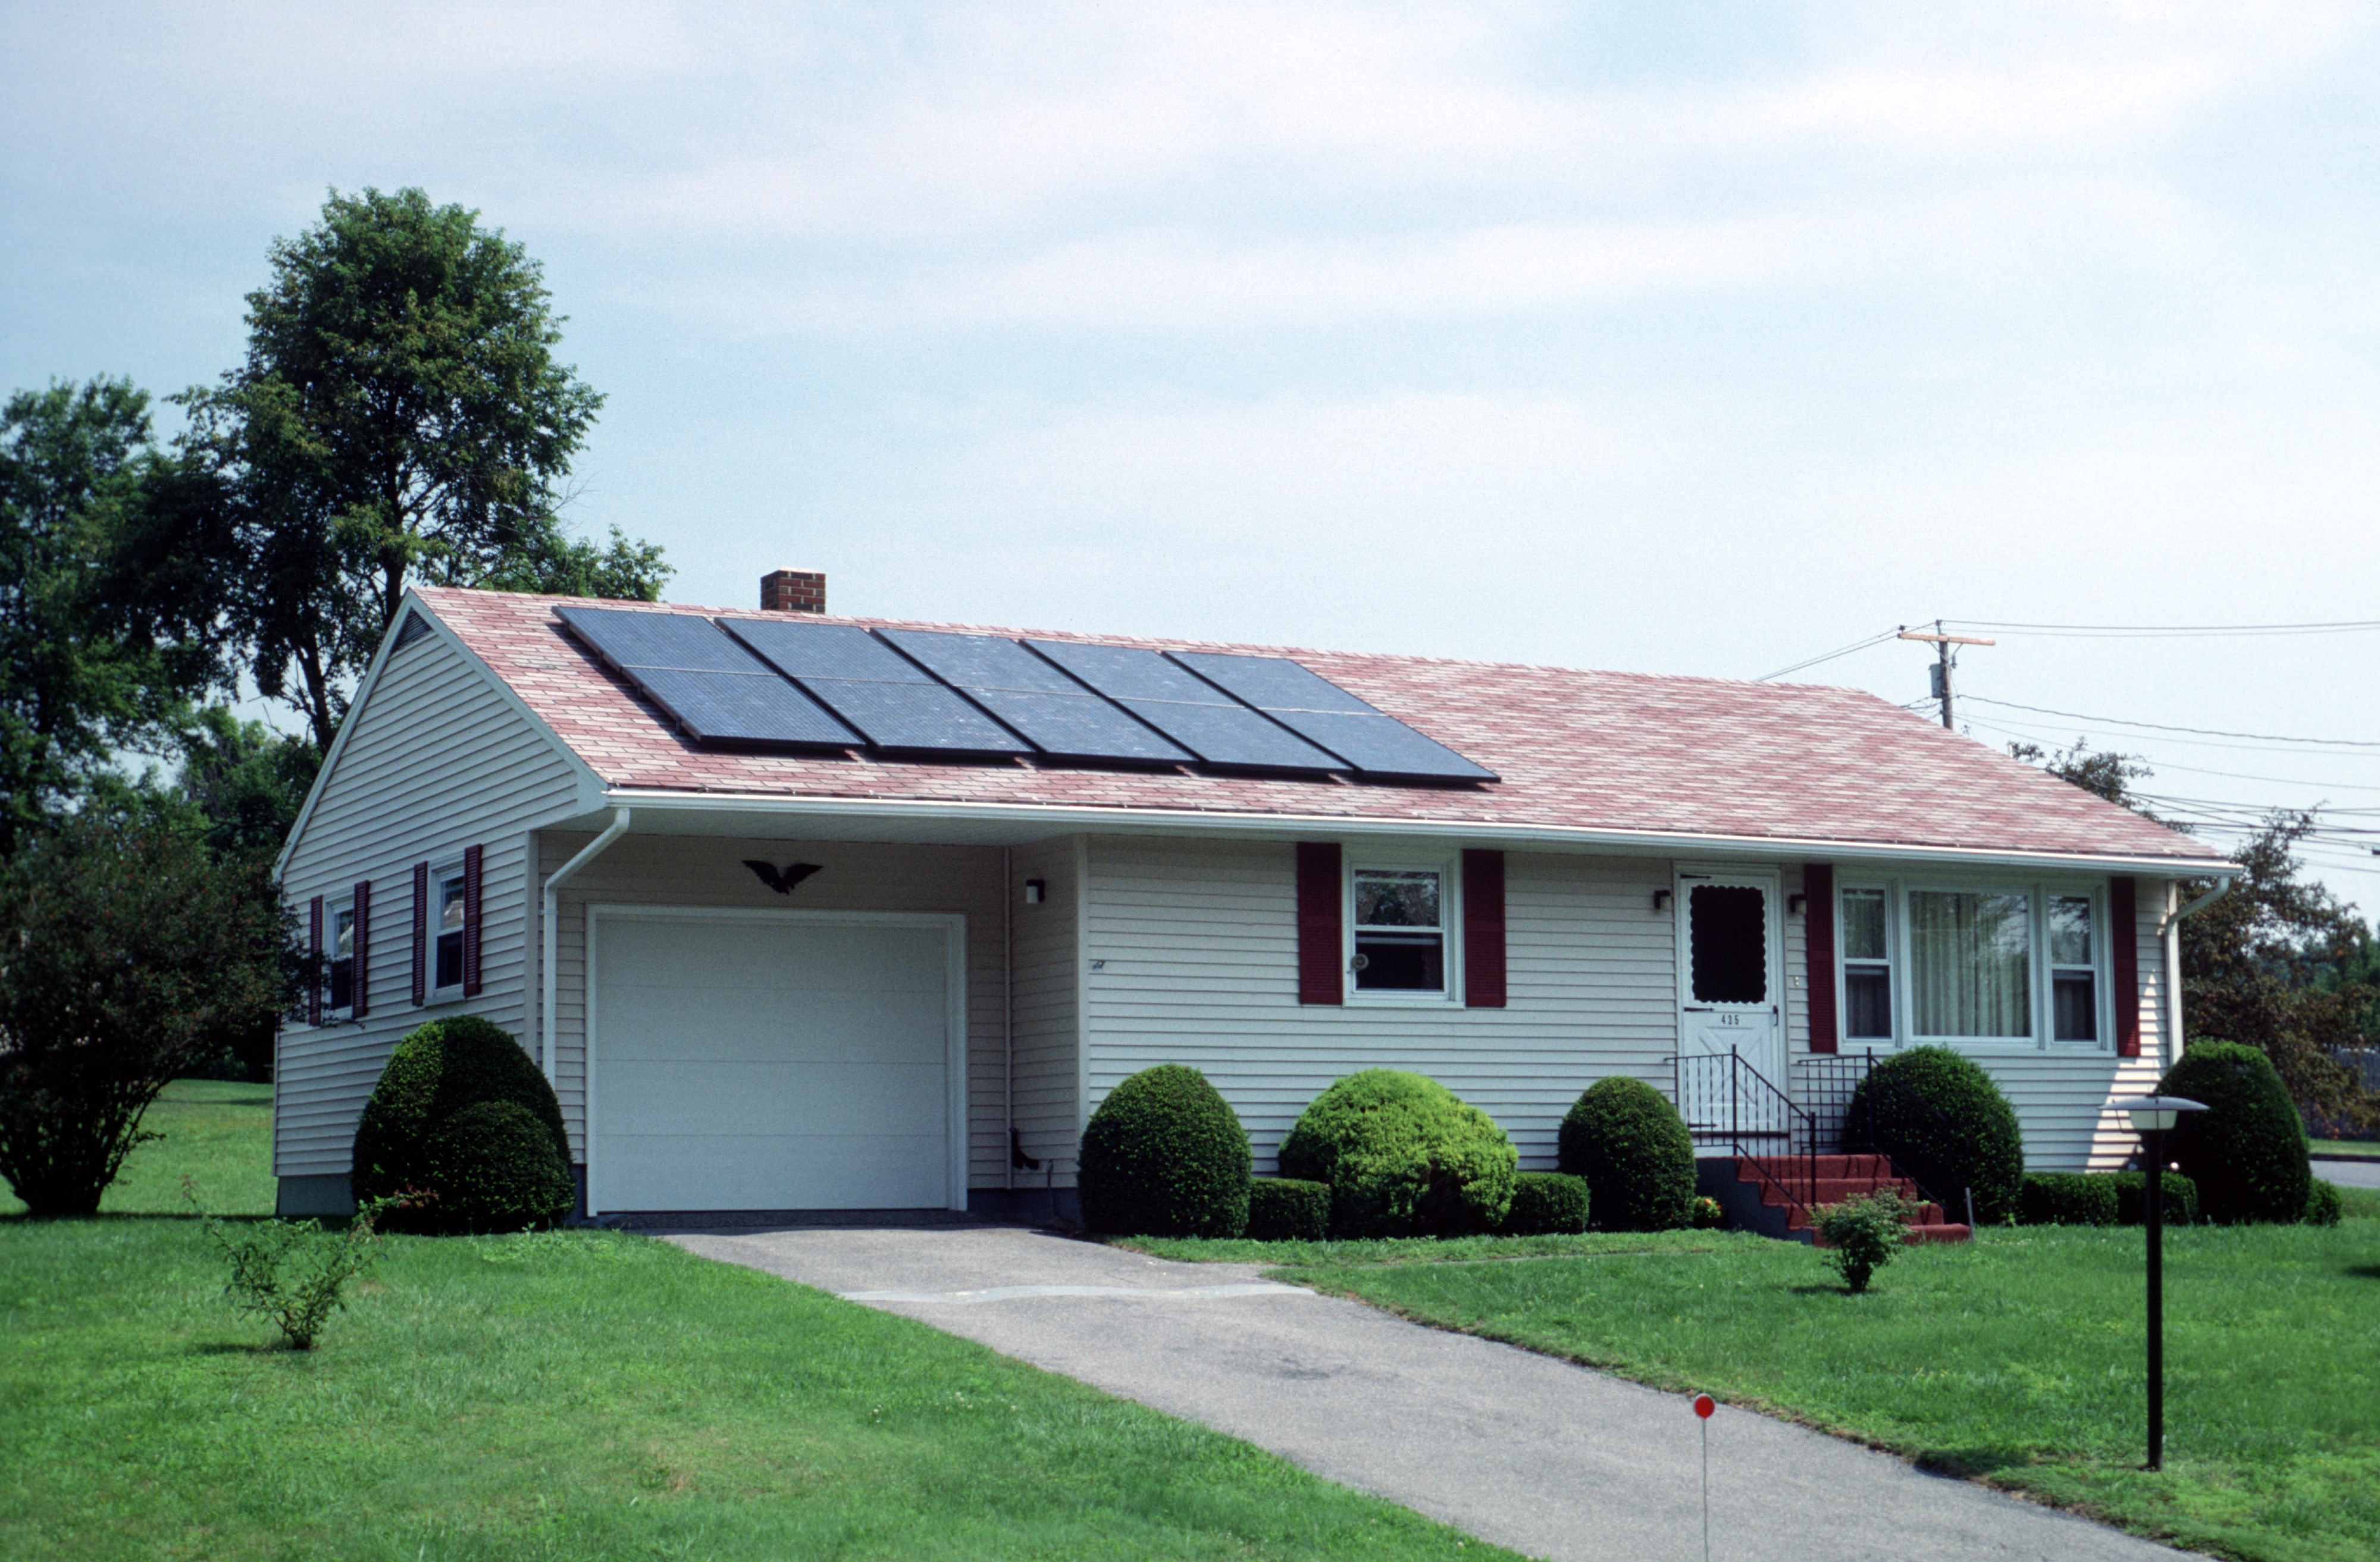 Image of a solar photovoltaic system on the roof of a house.